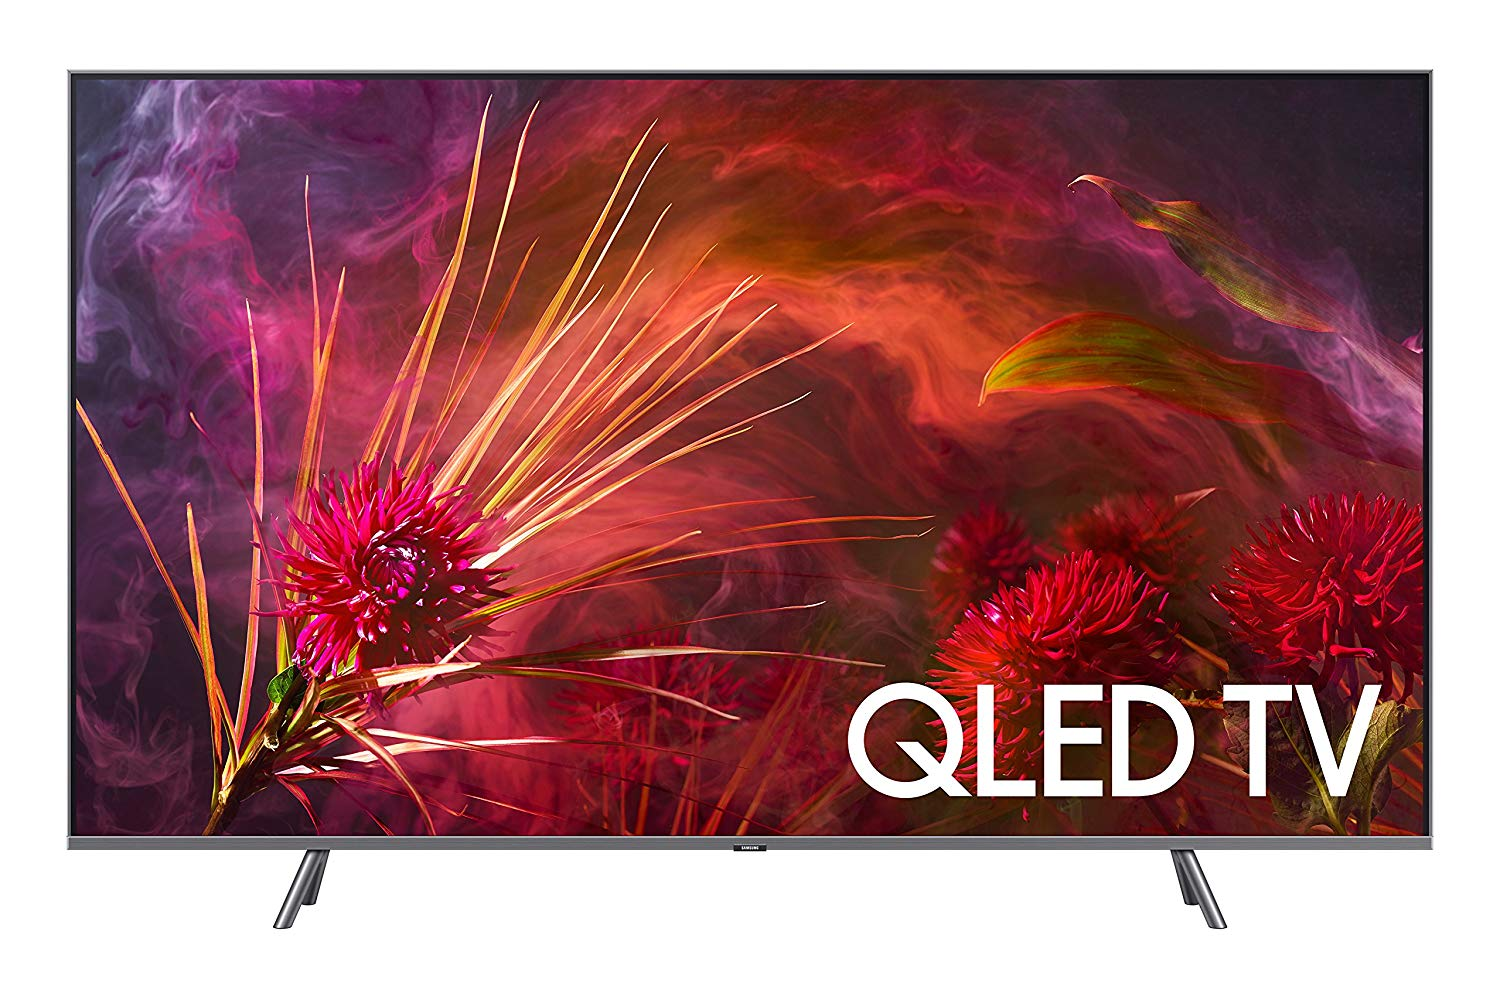 Samsung QLED 4K UHS Smart TV